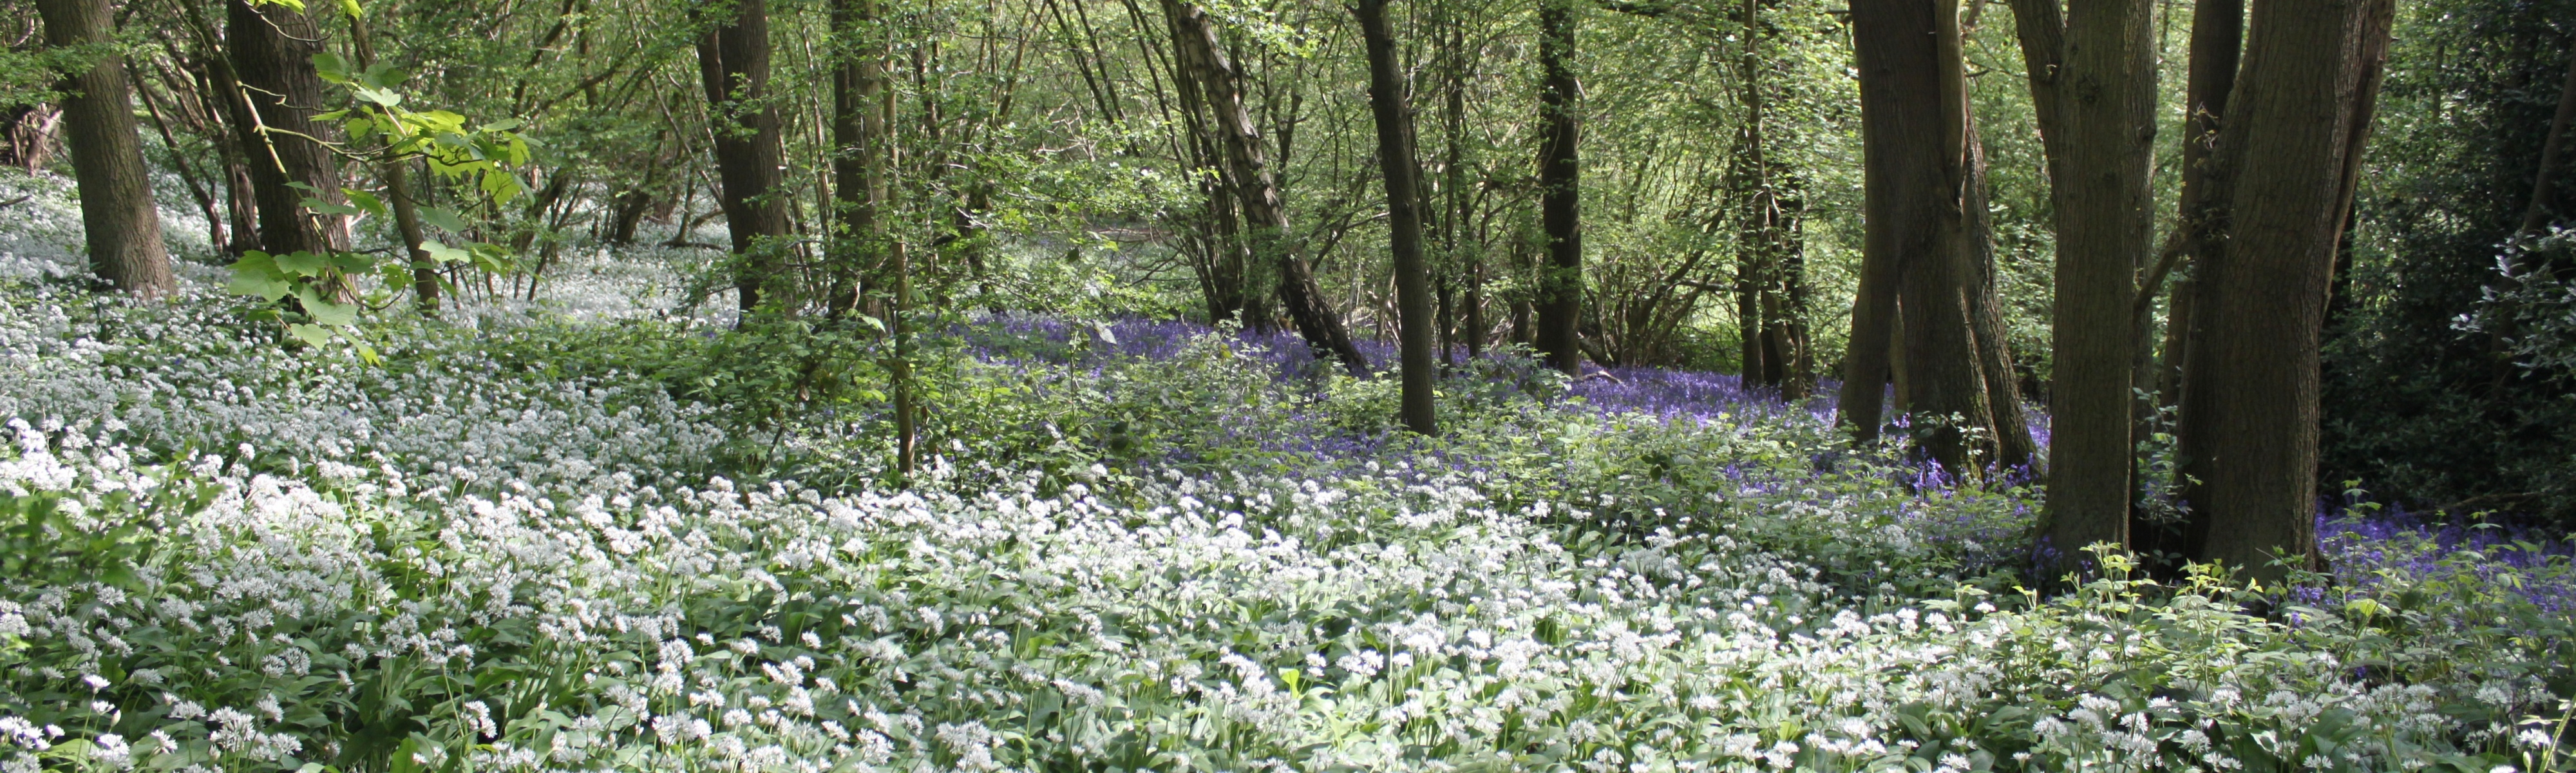 Wild garlic in bloom in Crich Chase by Geoff Brown